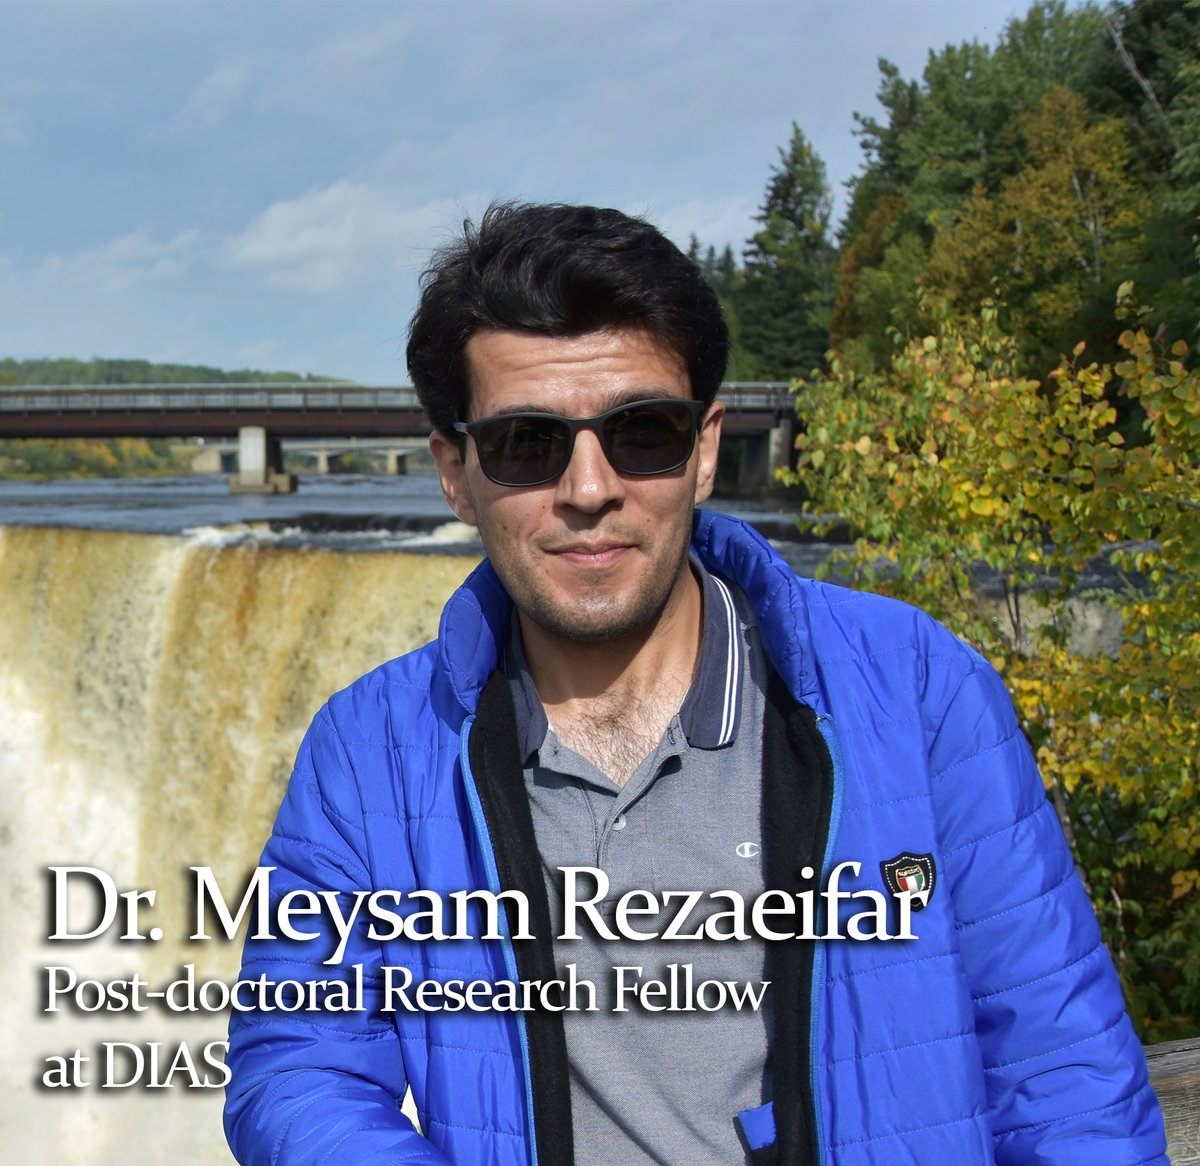 test Twitter Media - What does DIAS mean to you? We get to hear what Dr. Meysam Rezaeifar, Post-doctoral Research Fellow of Geophysics in the School of Cosmic Physics at DIAS, has to say! https://t.co/Dtyz4qFmqI